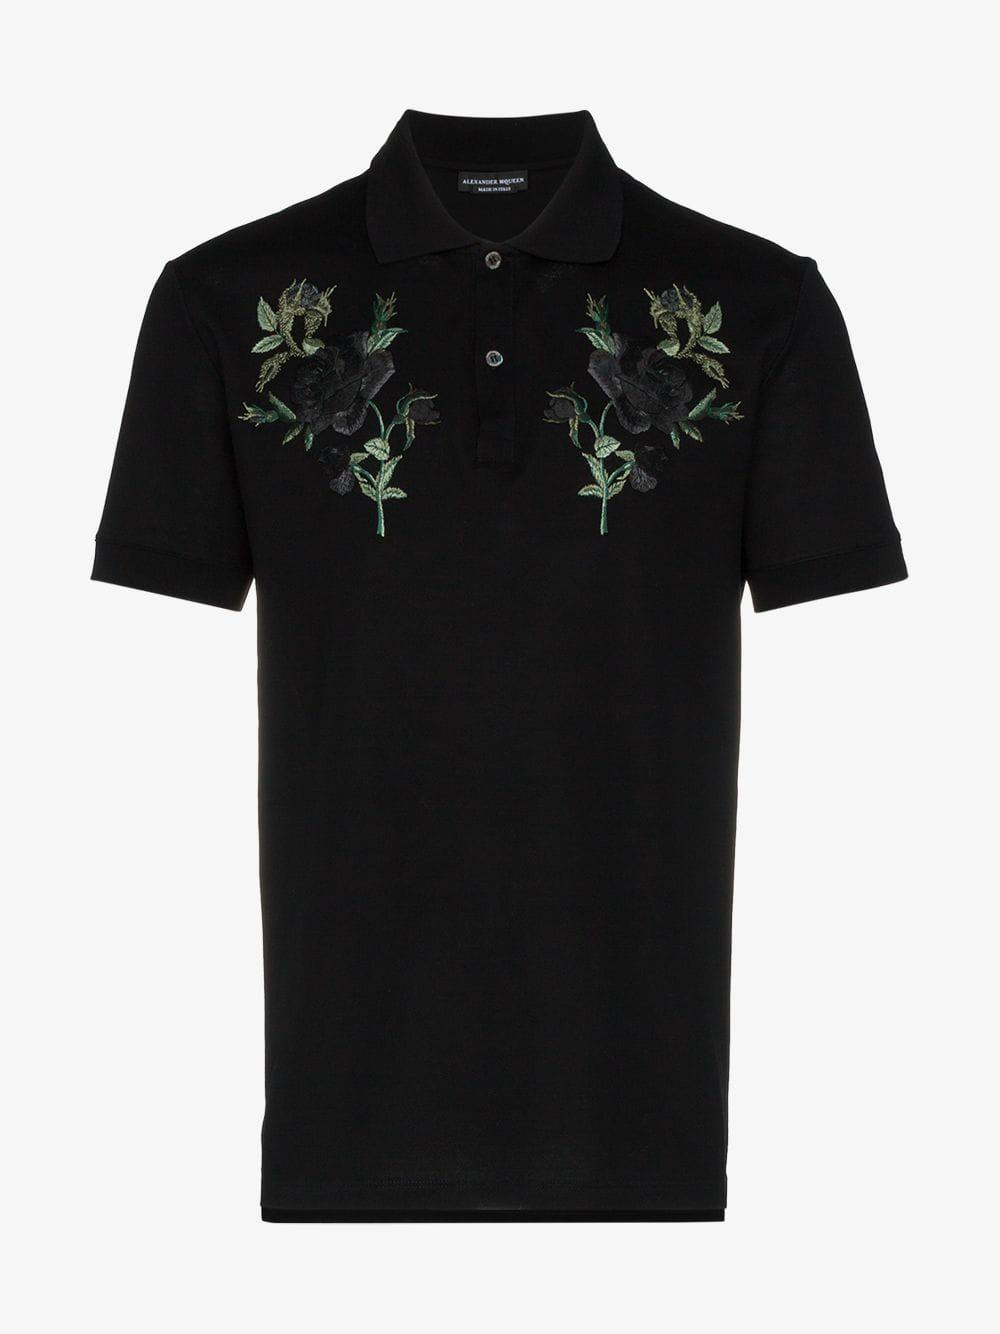 Alexander McQueen Cotton Rose Embroidered Polo Shirt in Black for Men